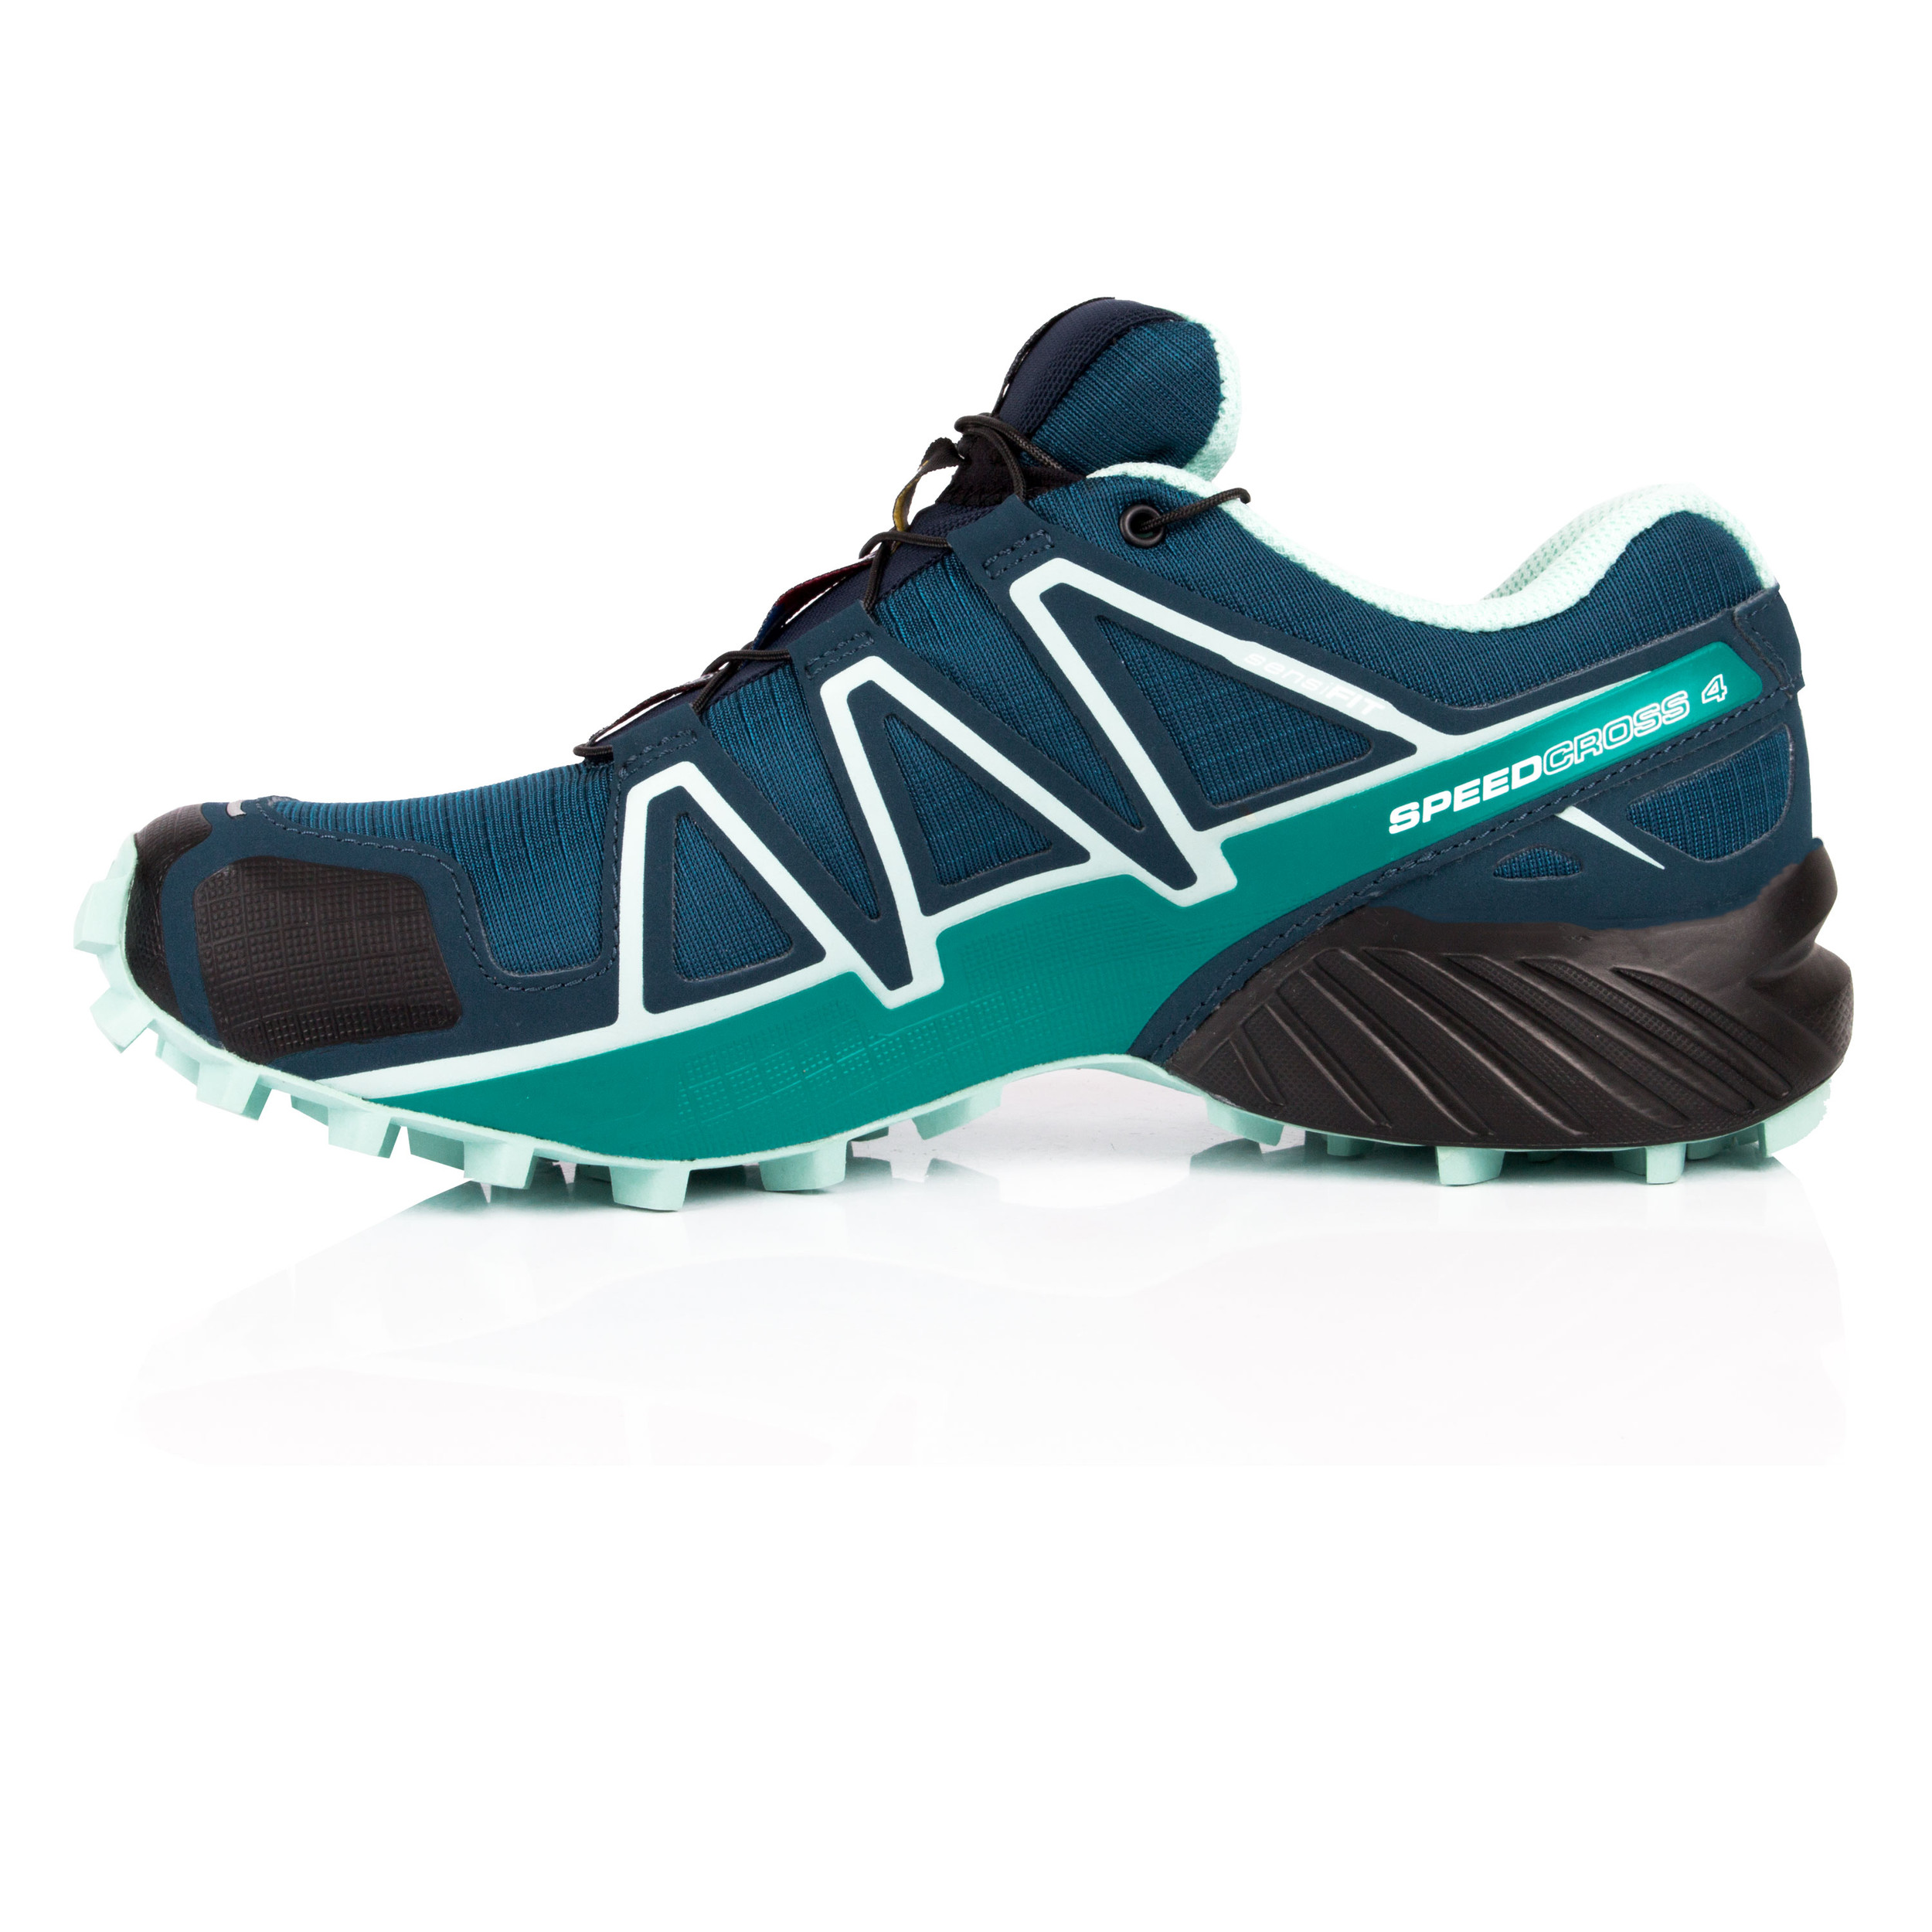 Salomon Womens SPEEDCROSS 4 Trail Running Shoes Trainers Sneakers Navy Blue 60421e91a2d3